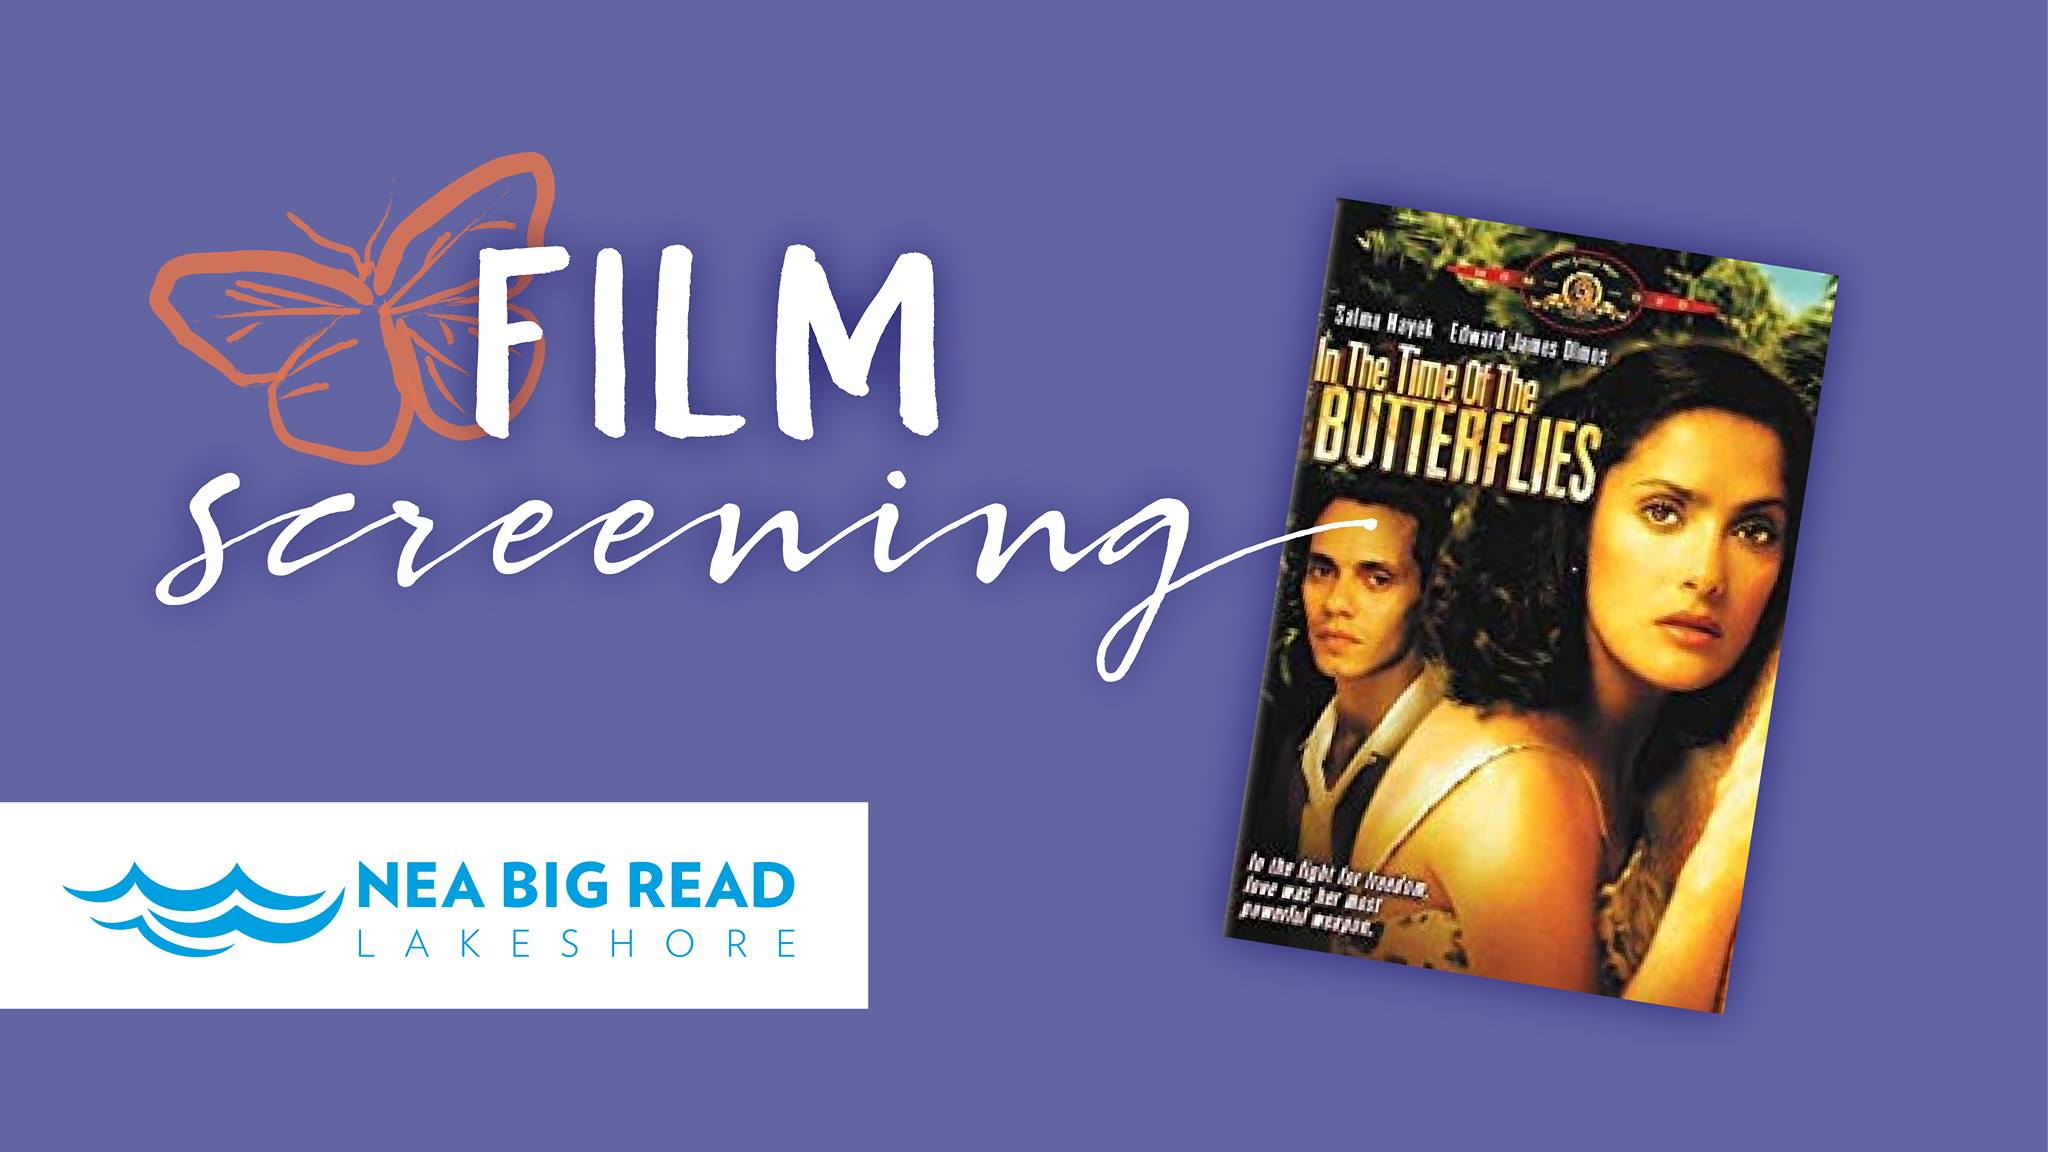 Film Screening of NEA Big Read Film Adaptation of In the Time of Butterflies